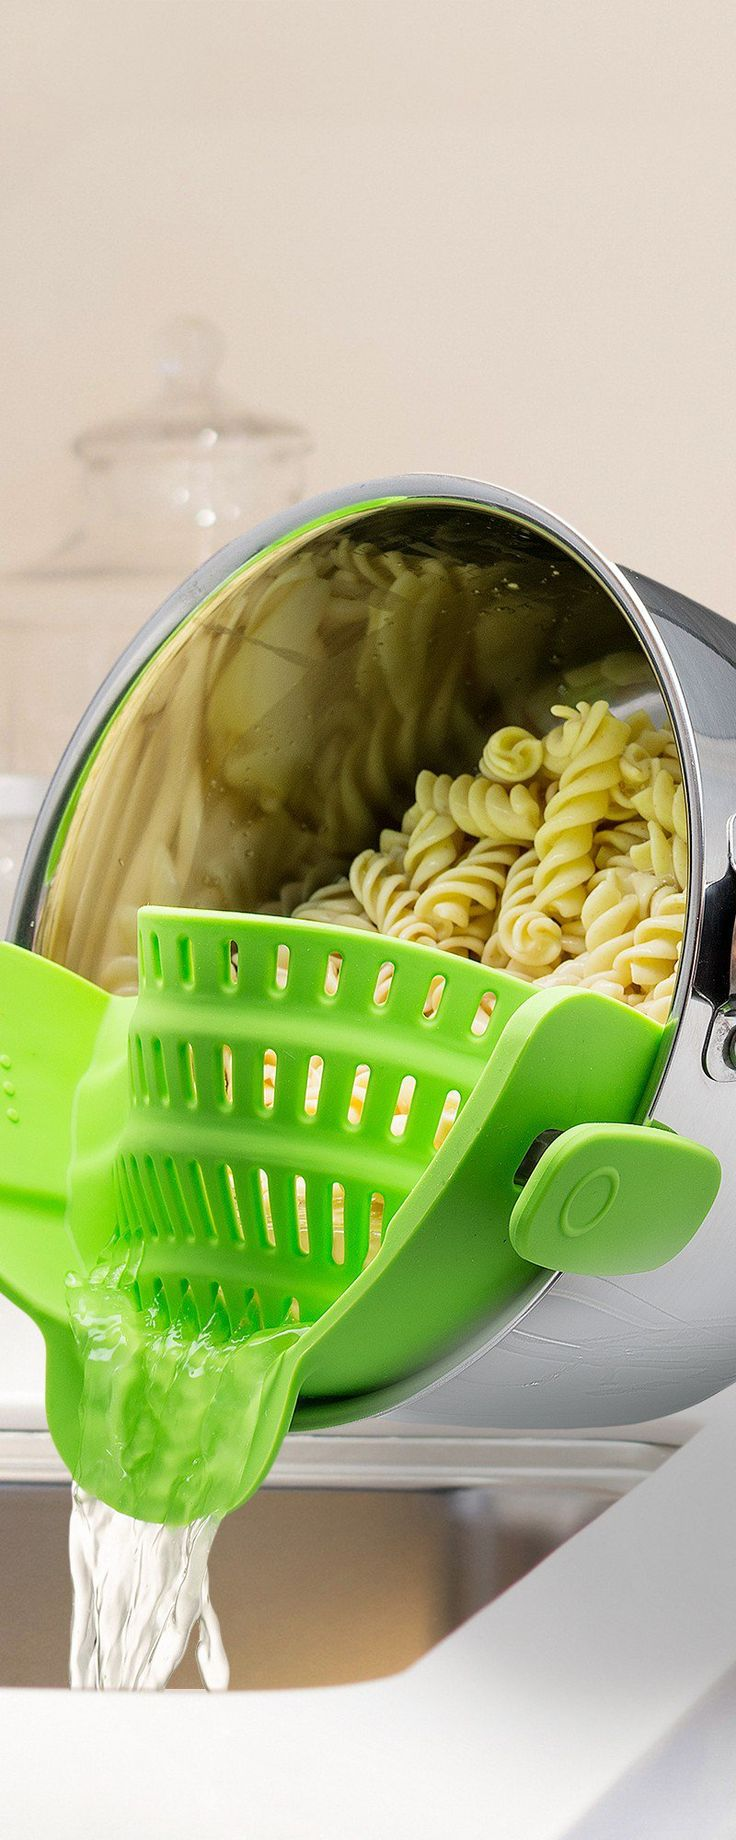 Snap'n Strain's silicone strainer, discovered by The Grommet, clips right on the pot to drain without needing to transfer your food.